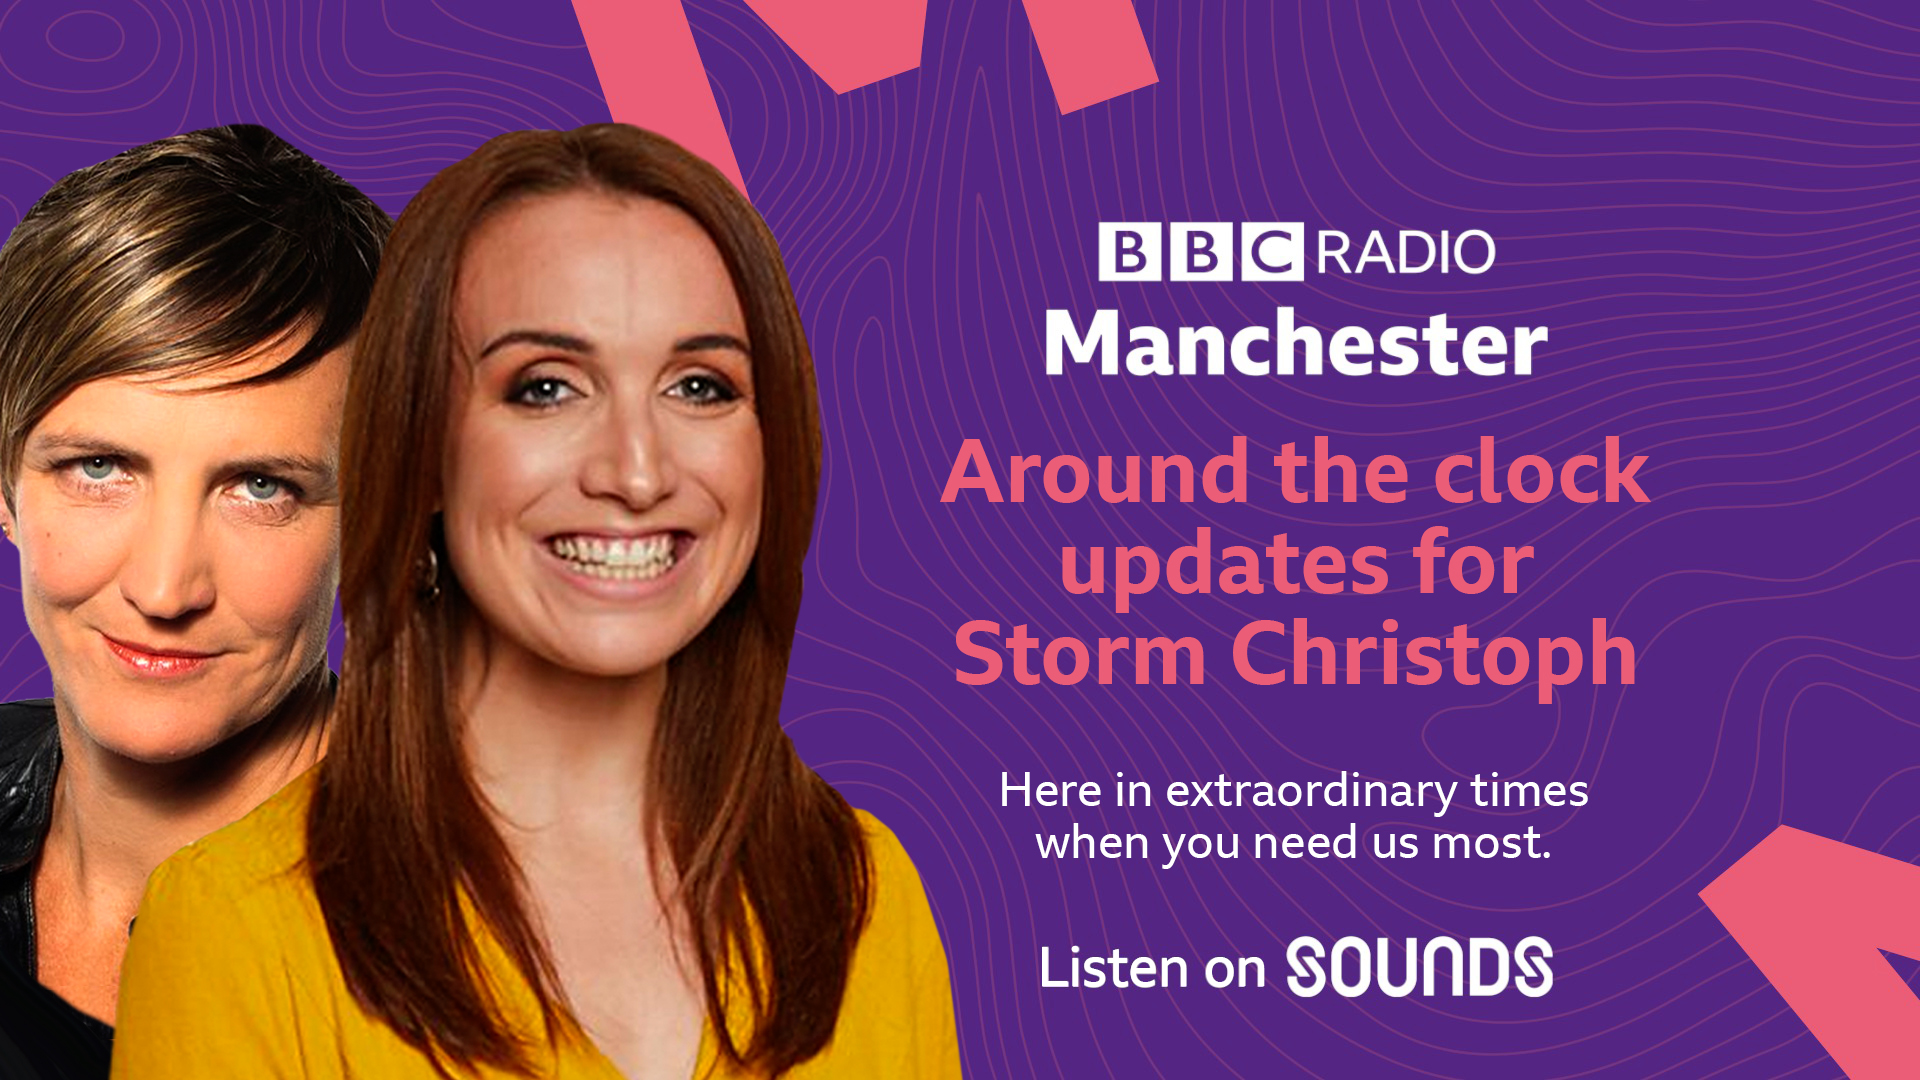 BBC Radio Manchester stays local for storm Christoph